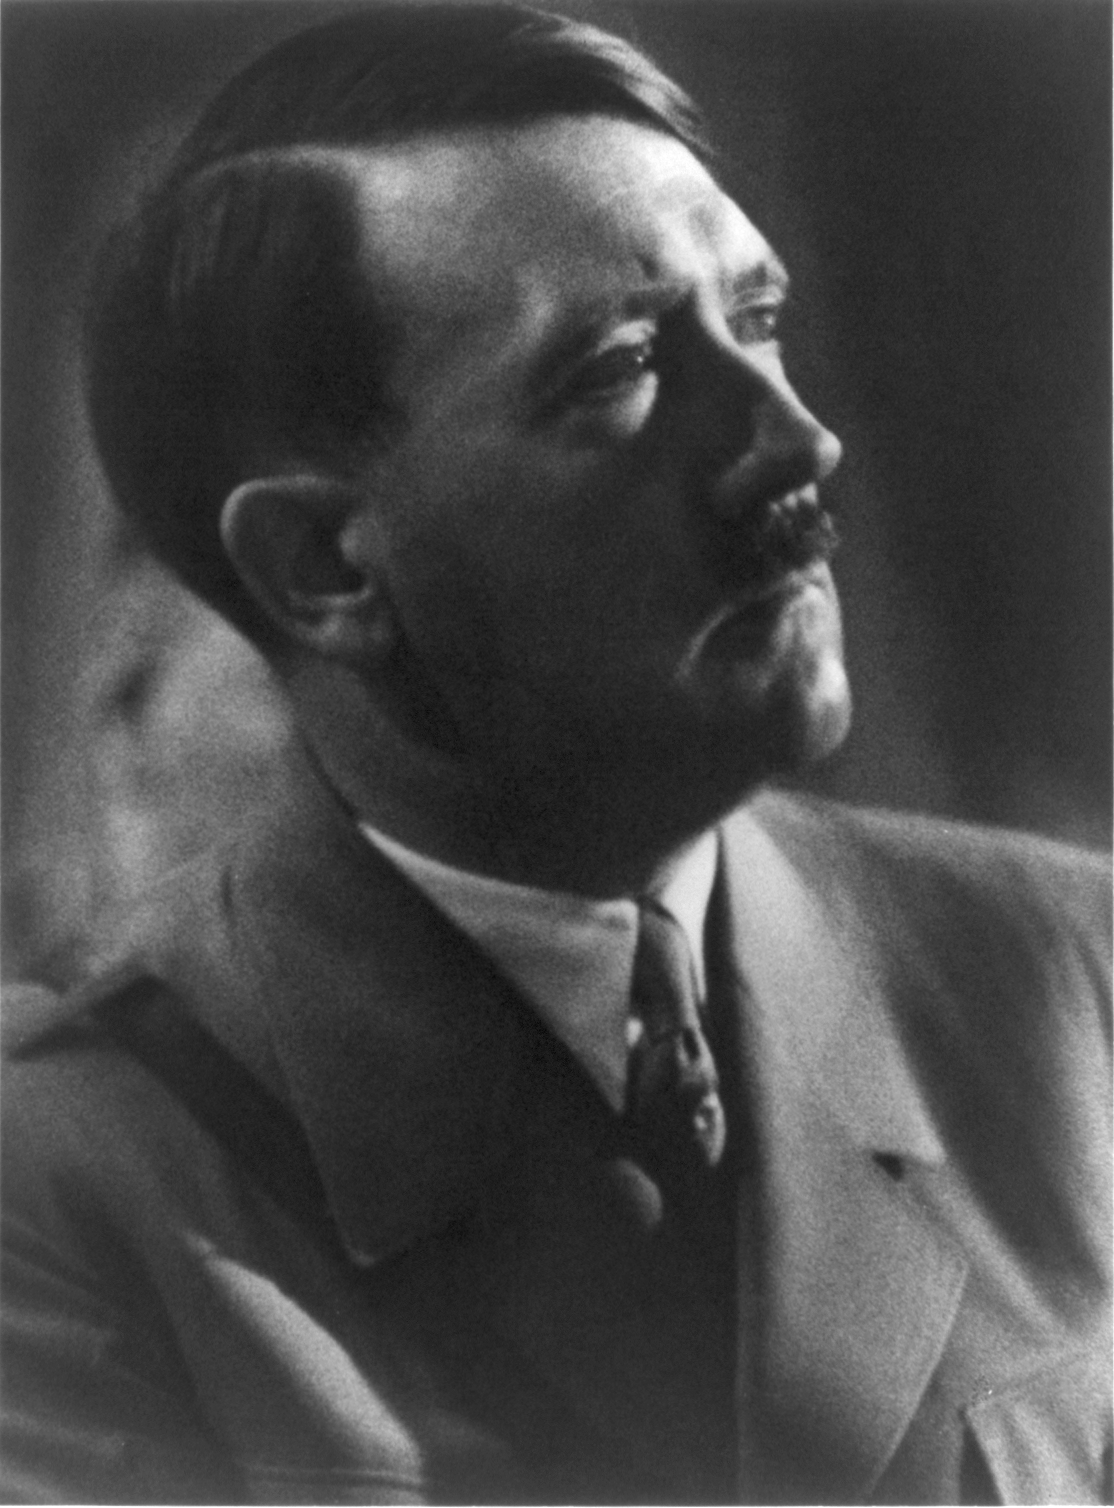 Adolf Hitler cph 3a48970 Writ by mister muleboy sometime around 10/27/2010 02:39:00 PM 3 comments: ...